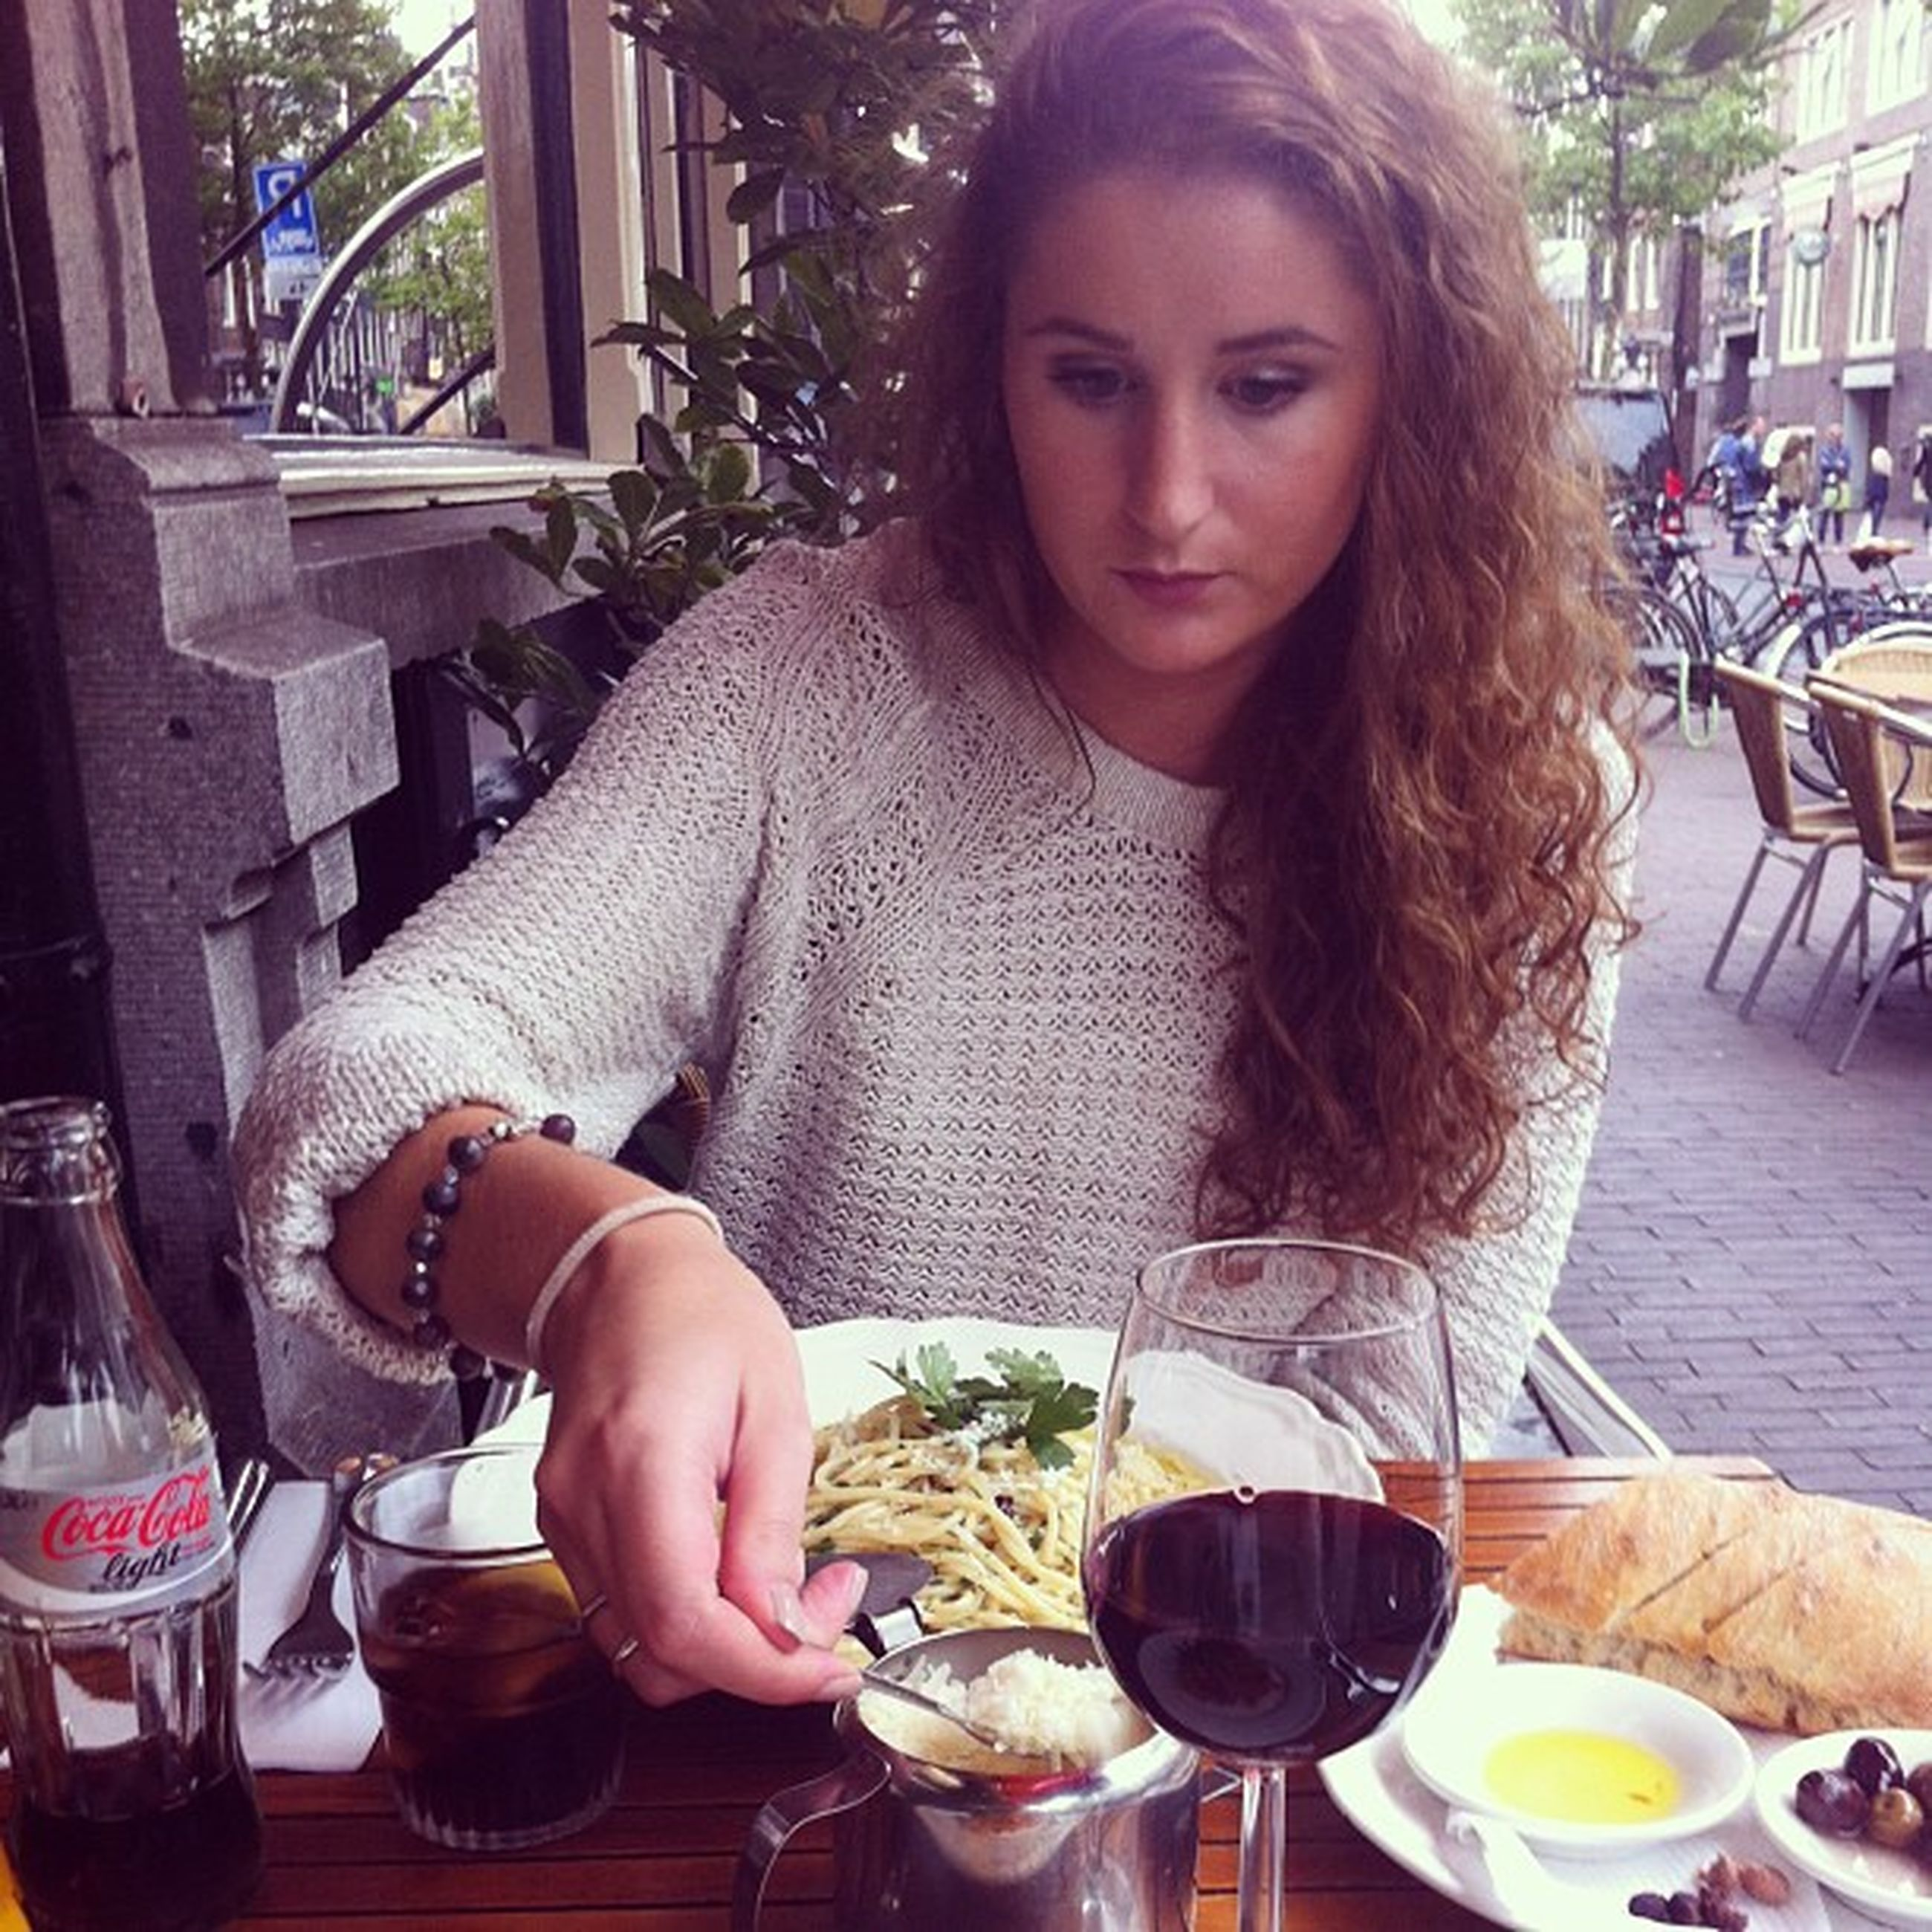 food and drink, person, table, lifestyles, sitting, drink, food, casual clothing, leisure activity, indoors, restaurant, chair, freshness, portrait, refreshment, front view, looking at camera, eating